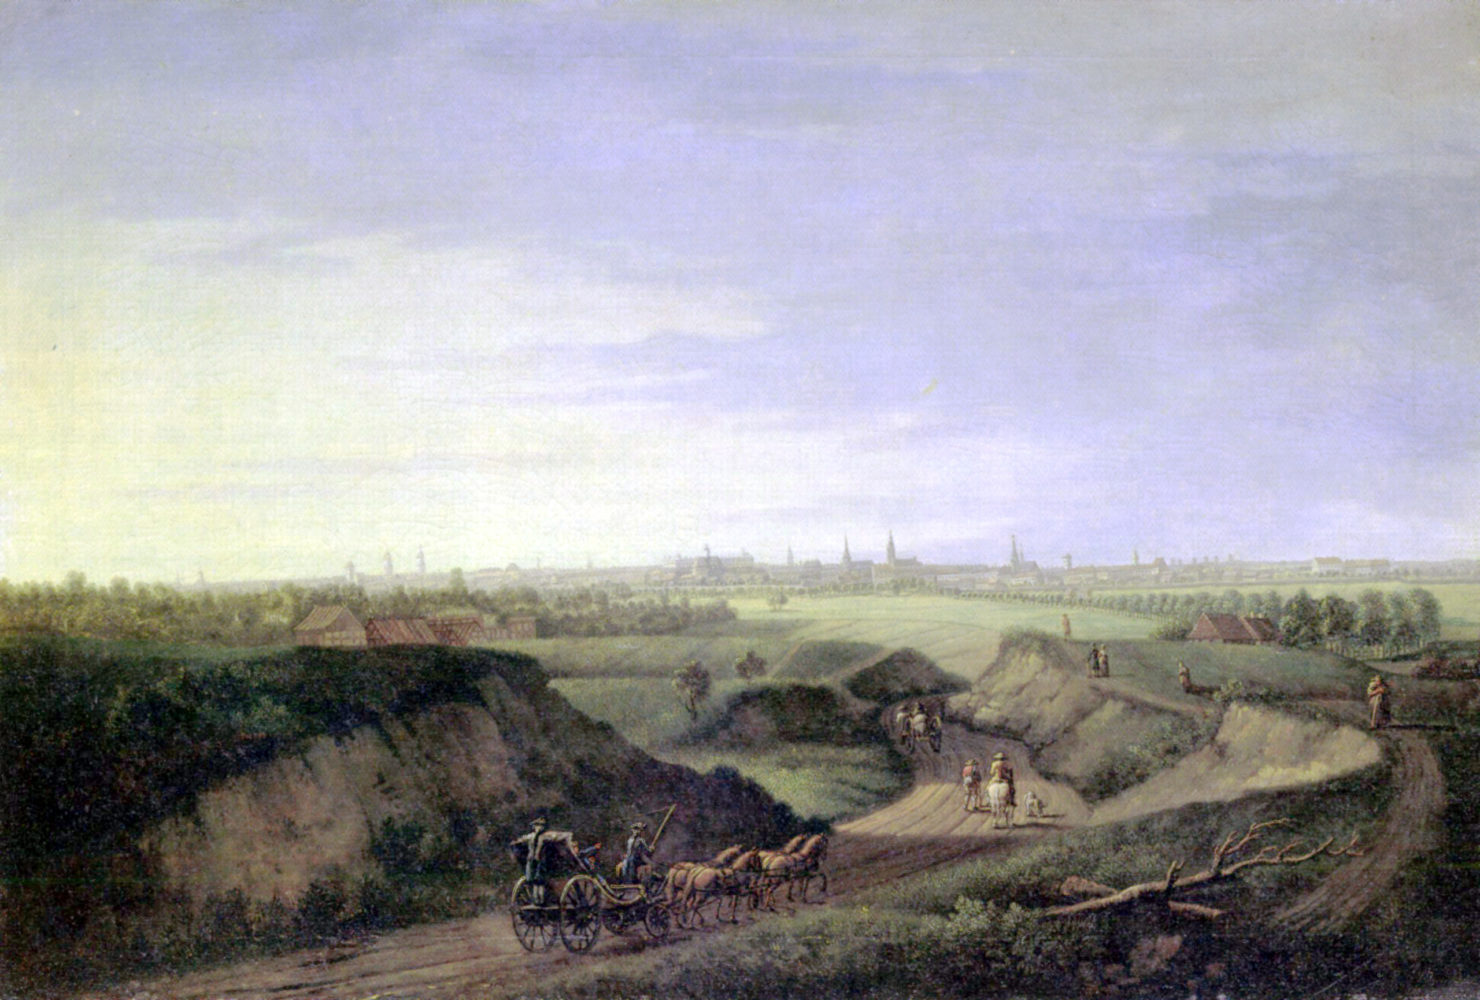 Johann Georg Rosenberg's painting of the Rollberge in Berlin. In the foreground, a coach pulled by four horses on a dirt road surrounded by rolling hills. The winding highway stretches into the distance. In the far distance is the 18th century city of Berlin.